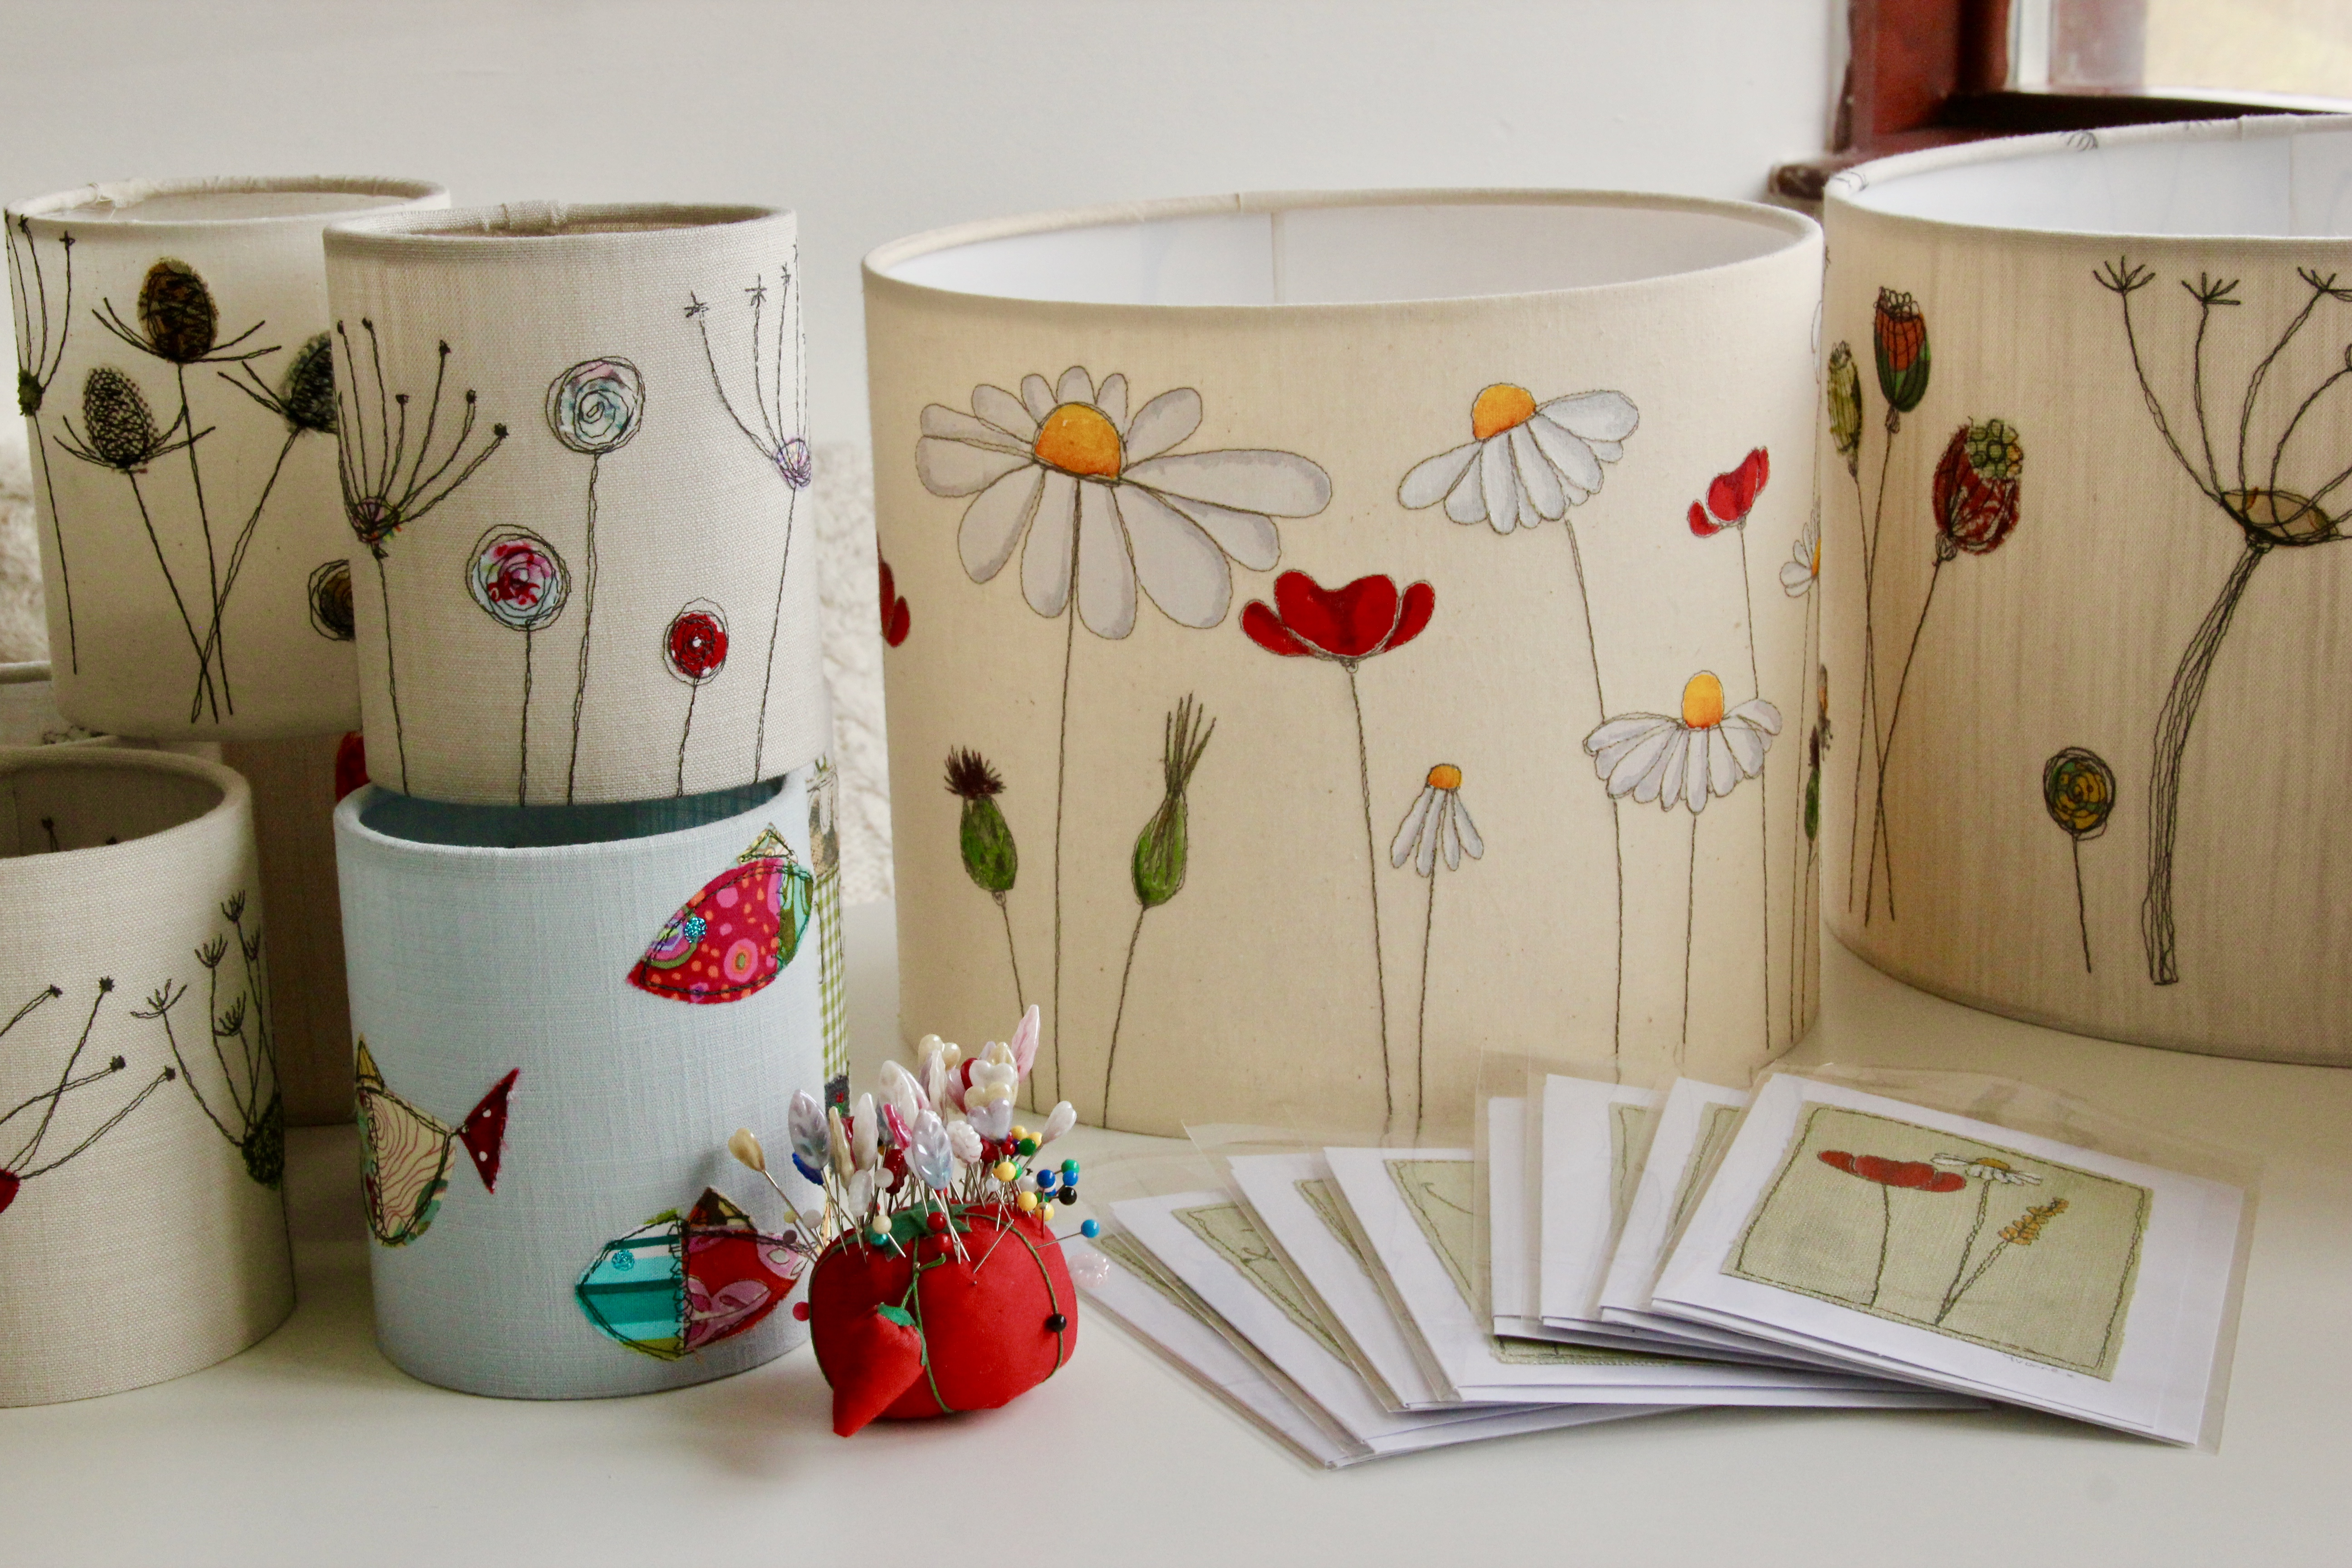 Handmade lampshades, freemotion embroidery, paint, lanterns